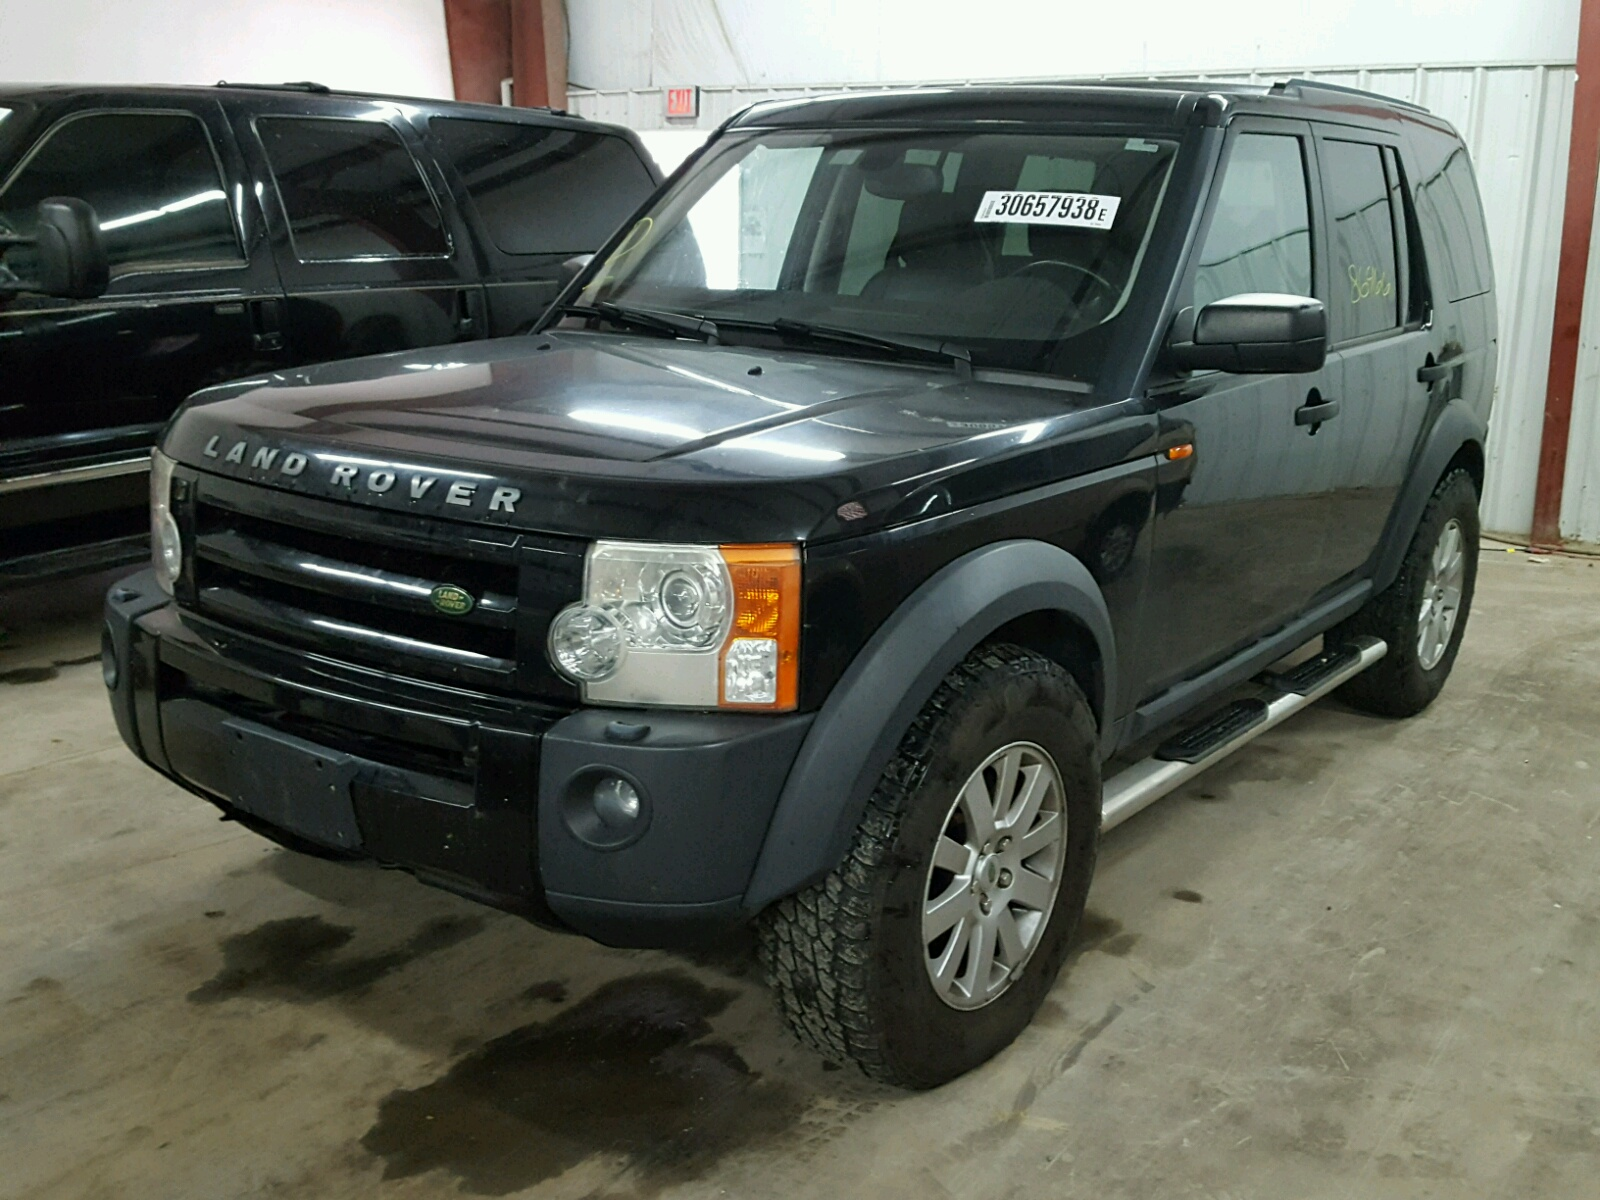 en ga in hse auto online lot auctions copart landrover for blue on se savannah sale carfinder salvage land rover cert of title